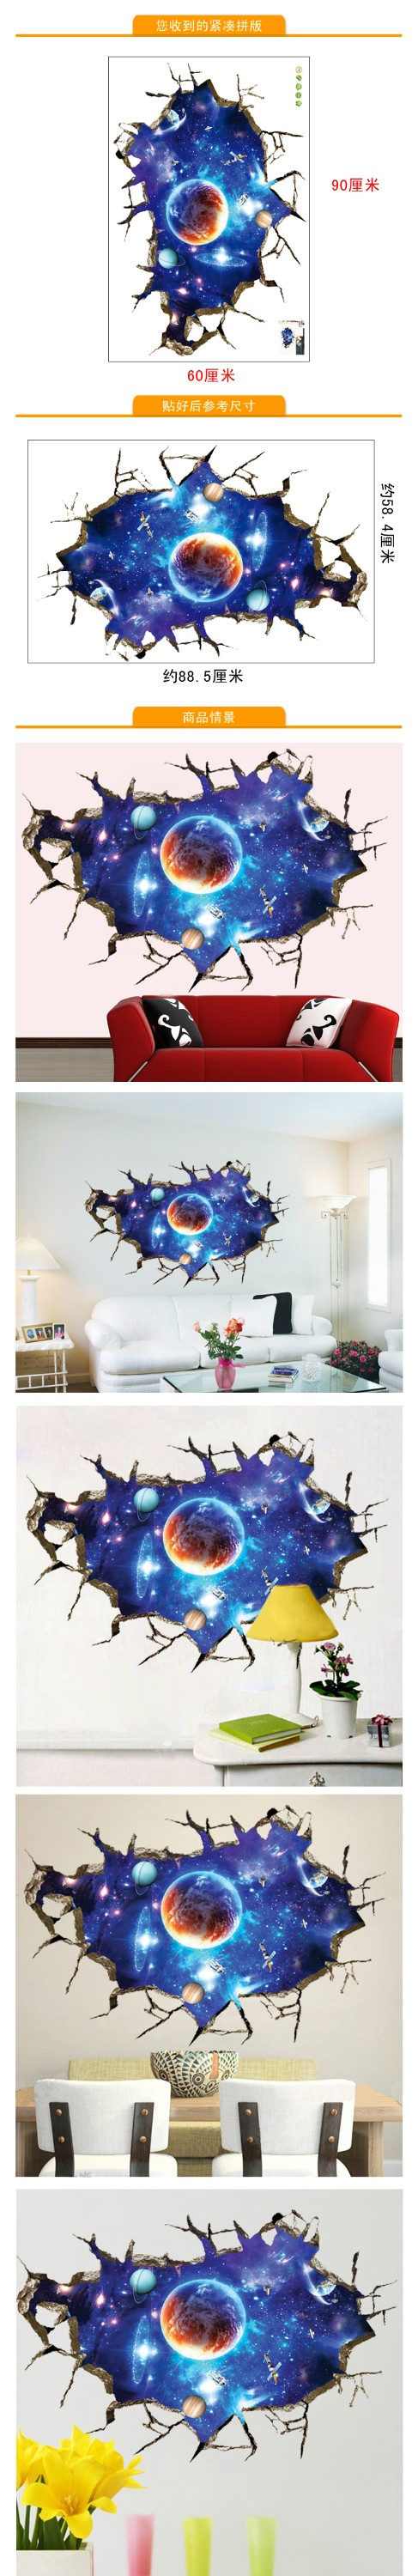 ALFOREVER the gorgeous starry sky 3D broken window wall decals